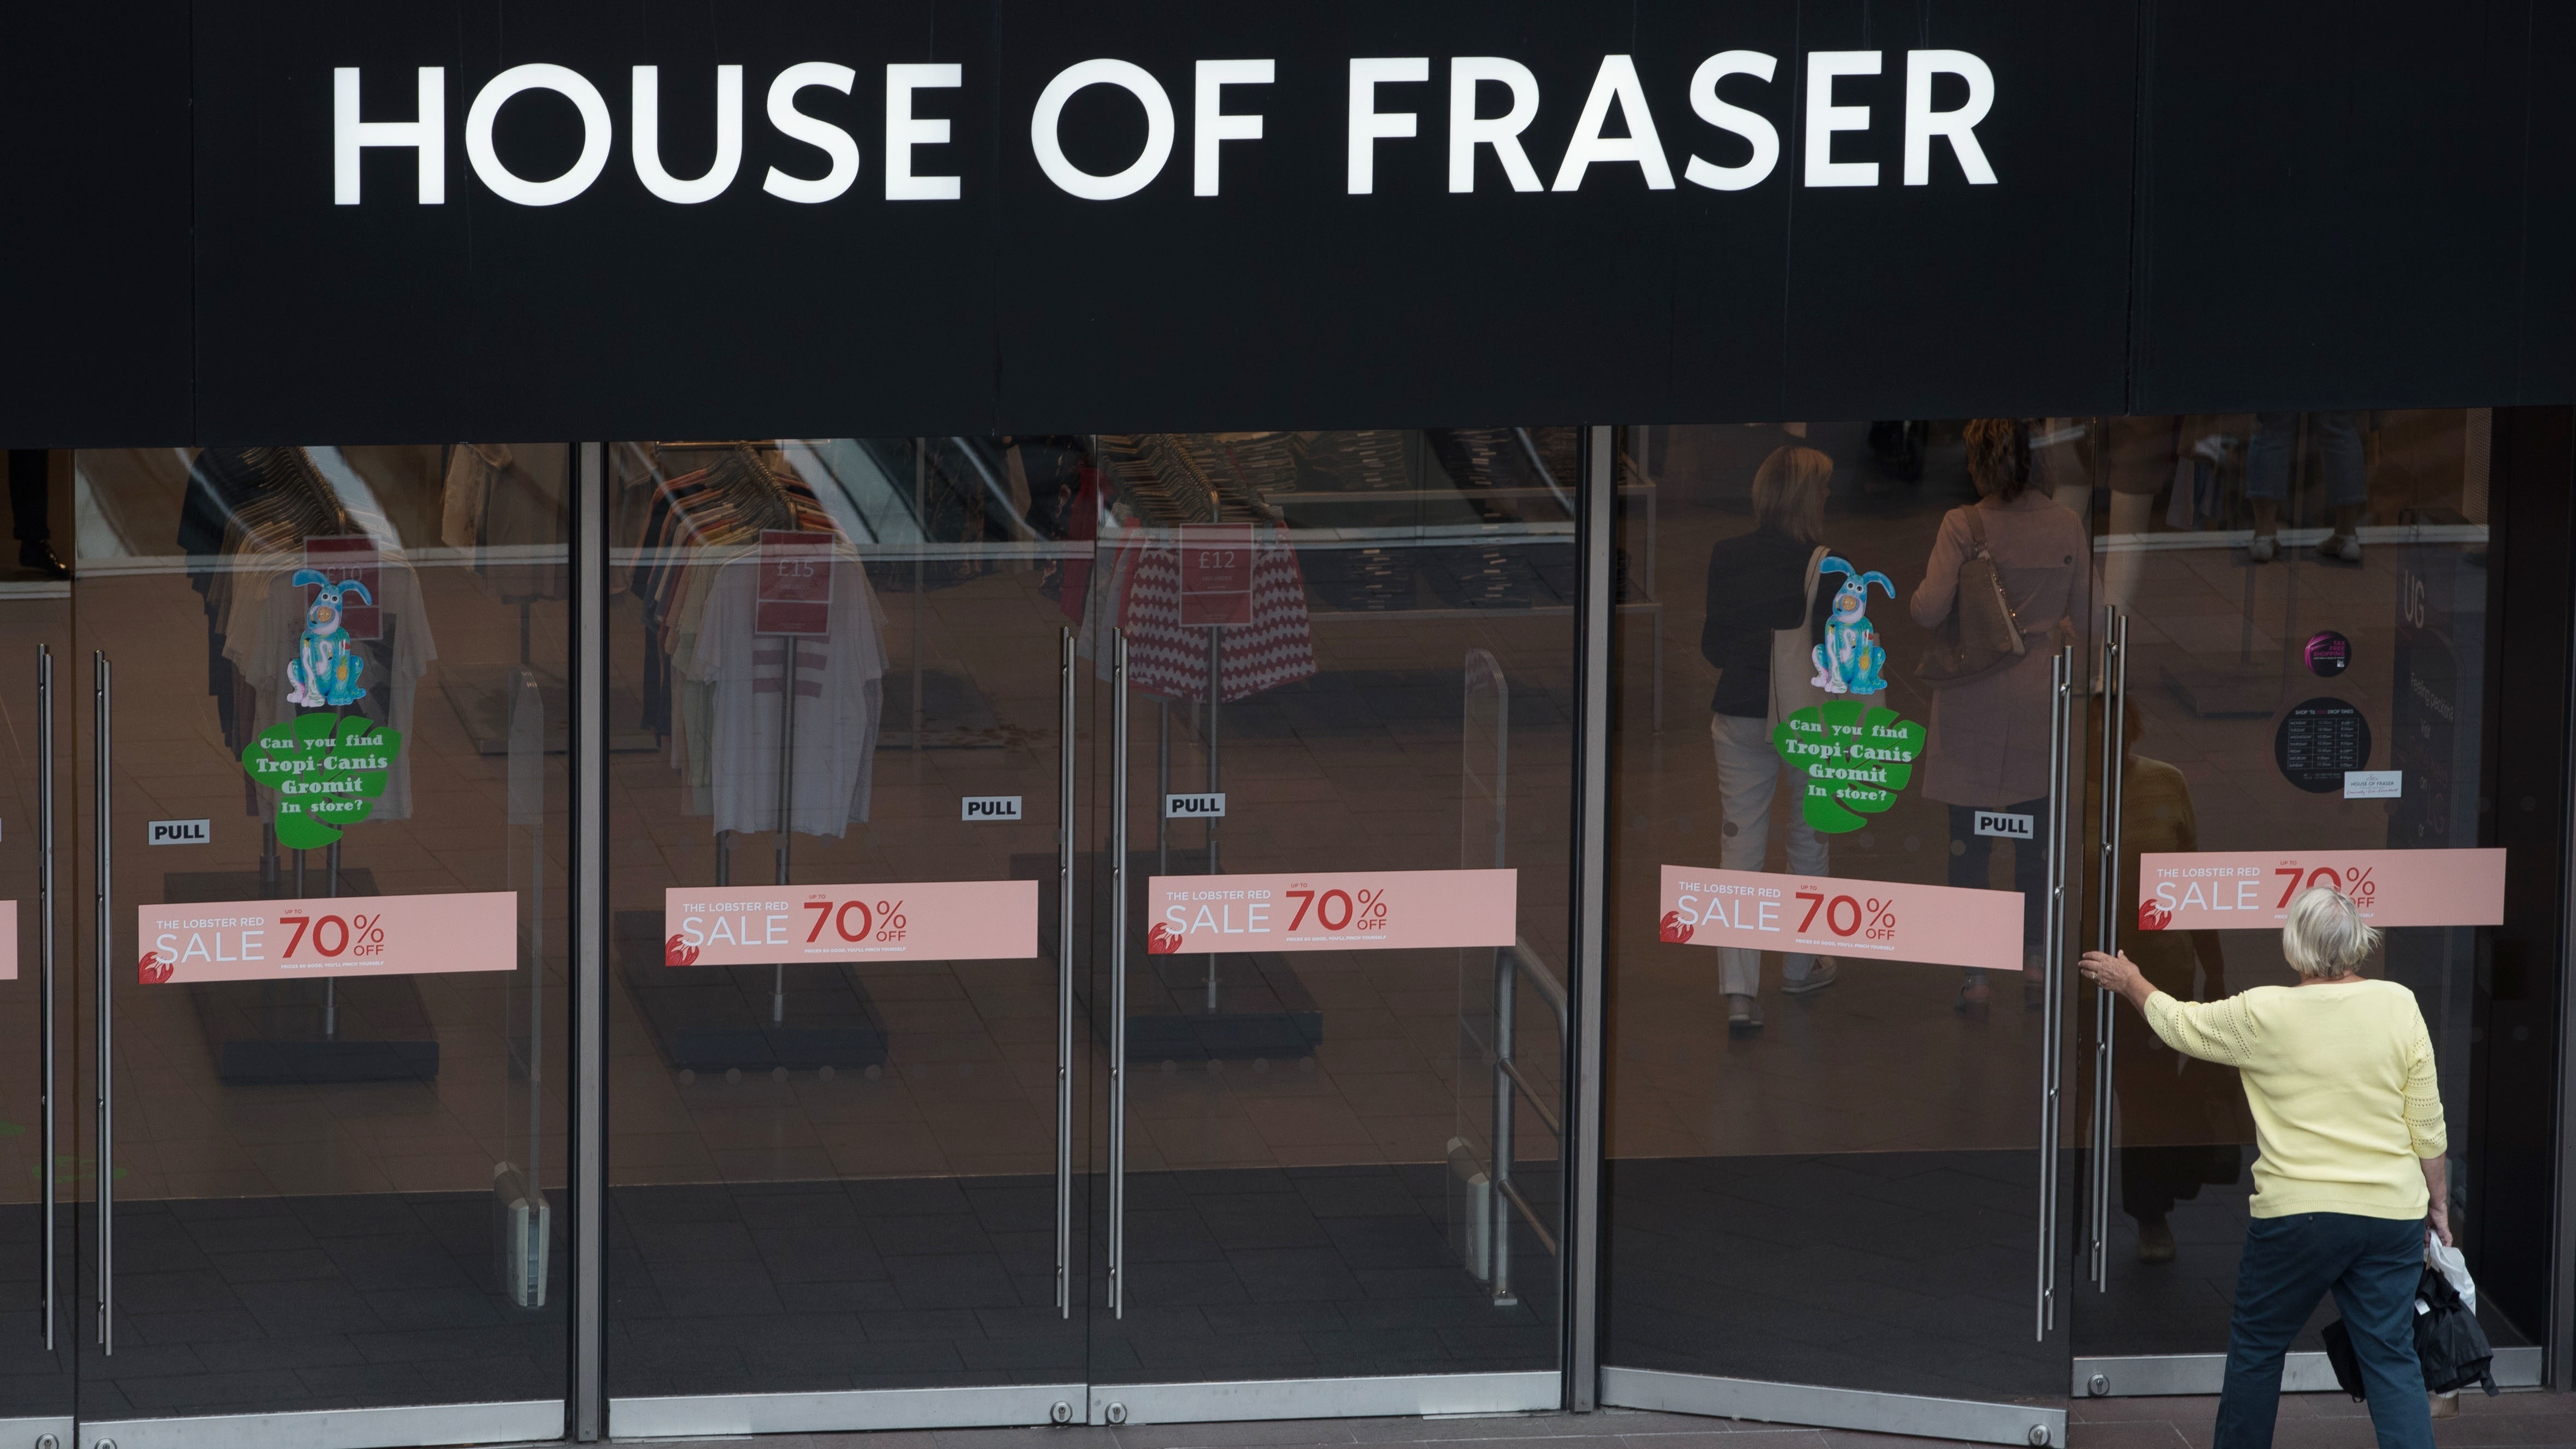 Xpo Logistics Axes 627 Jobs At House Of Fraser Warehouse Bt